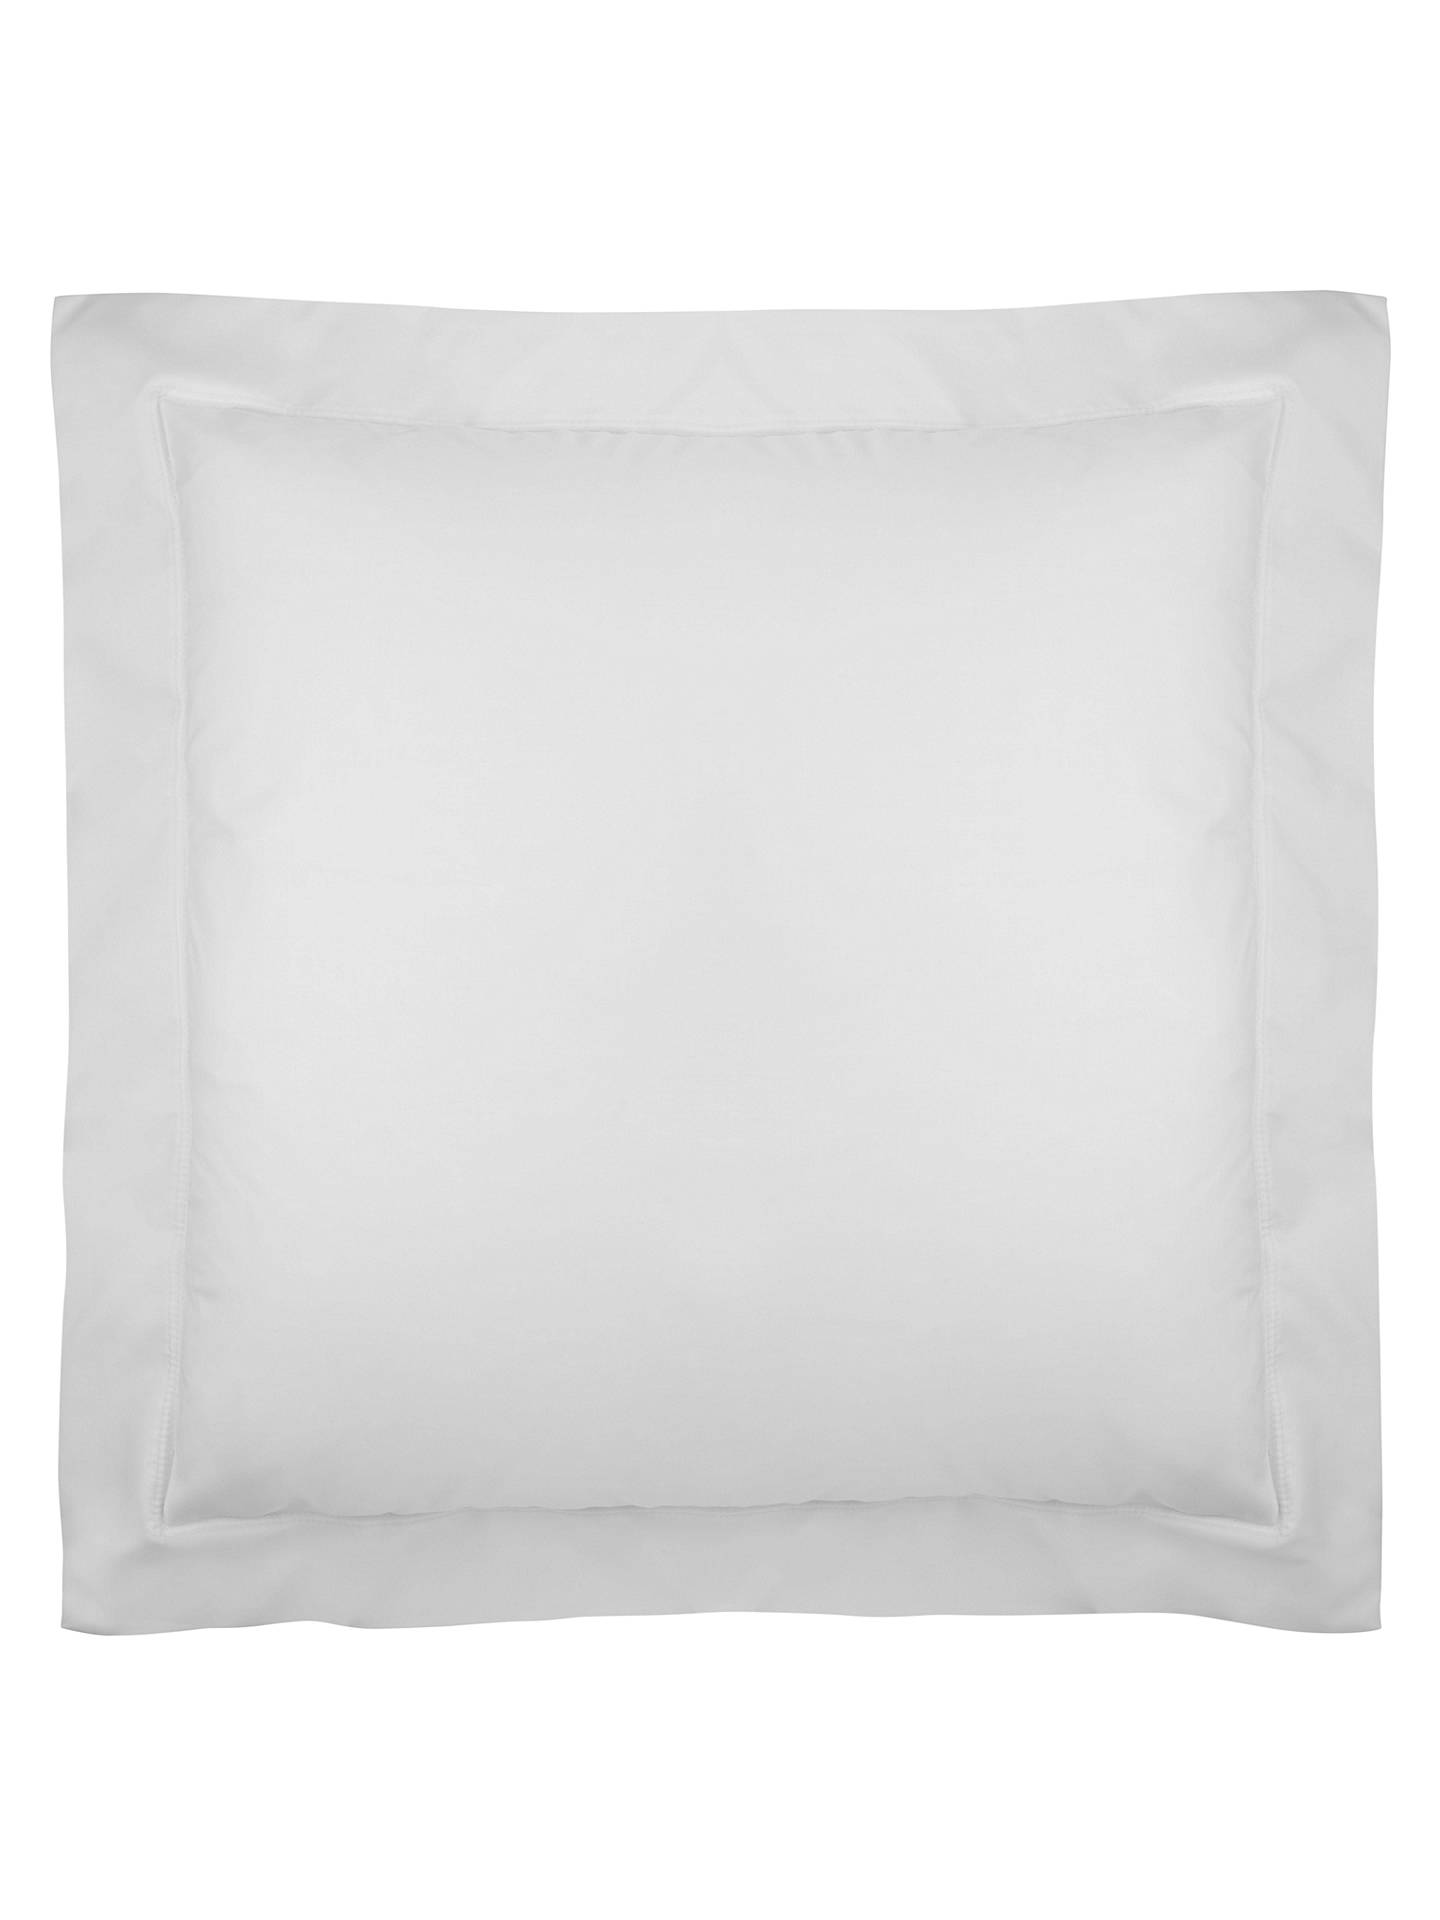 BuyJohn Lewis & Partners Crisp and Fresh 200 Thread Count Egyptian Cotton Standard Pillowcase, White Online at johnlewis.com